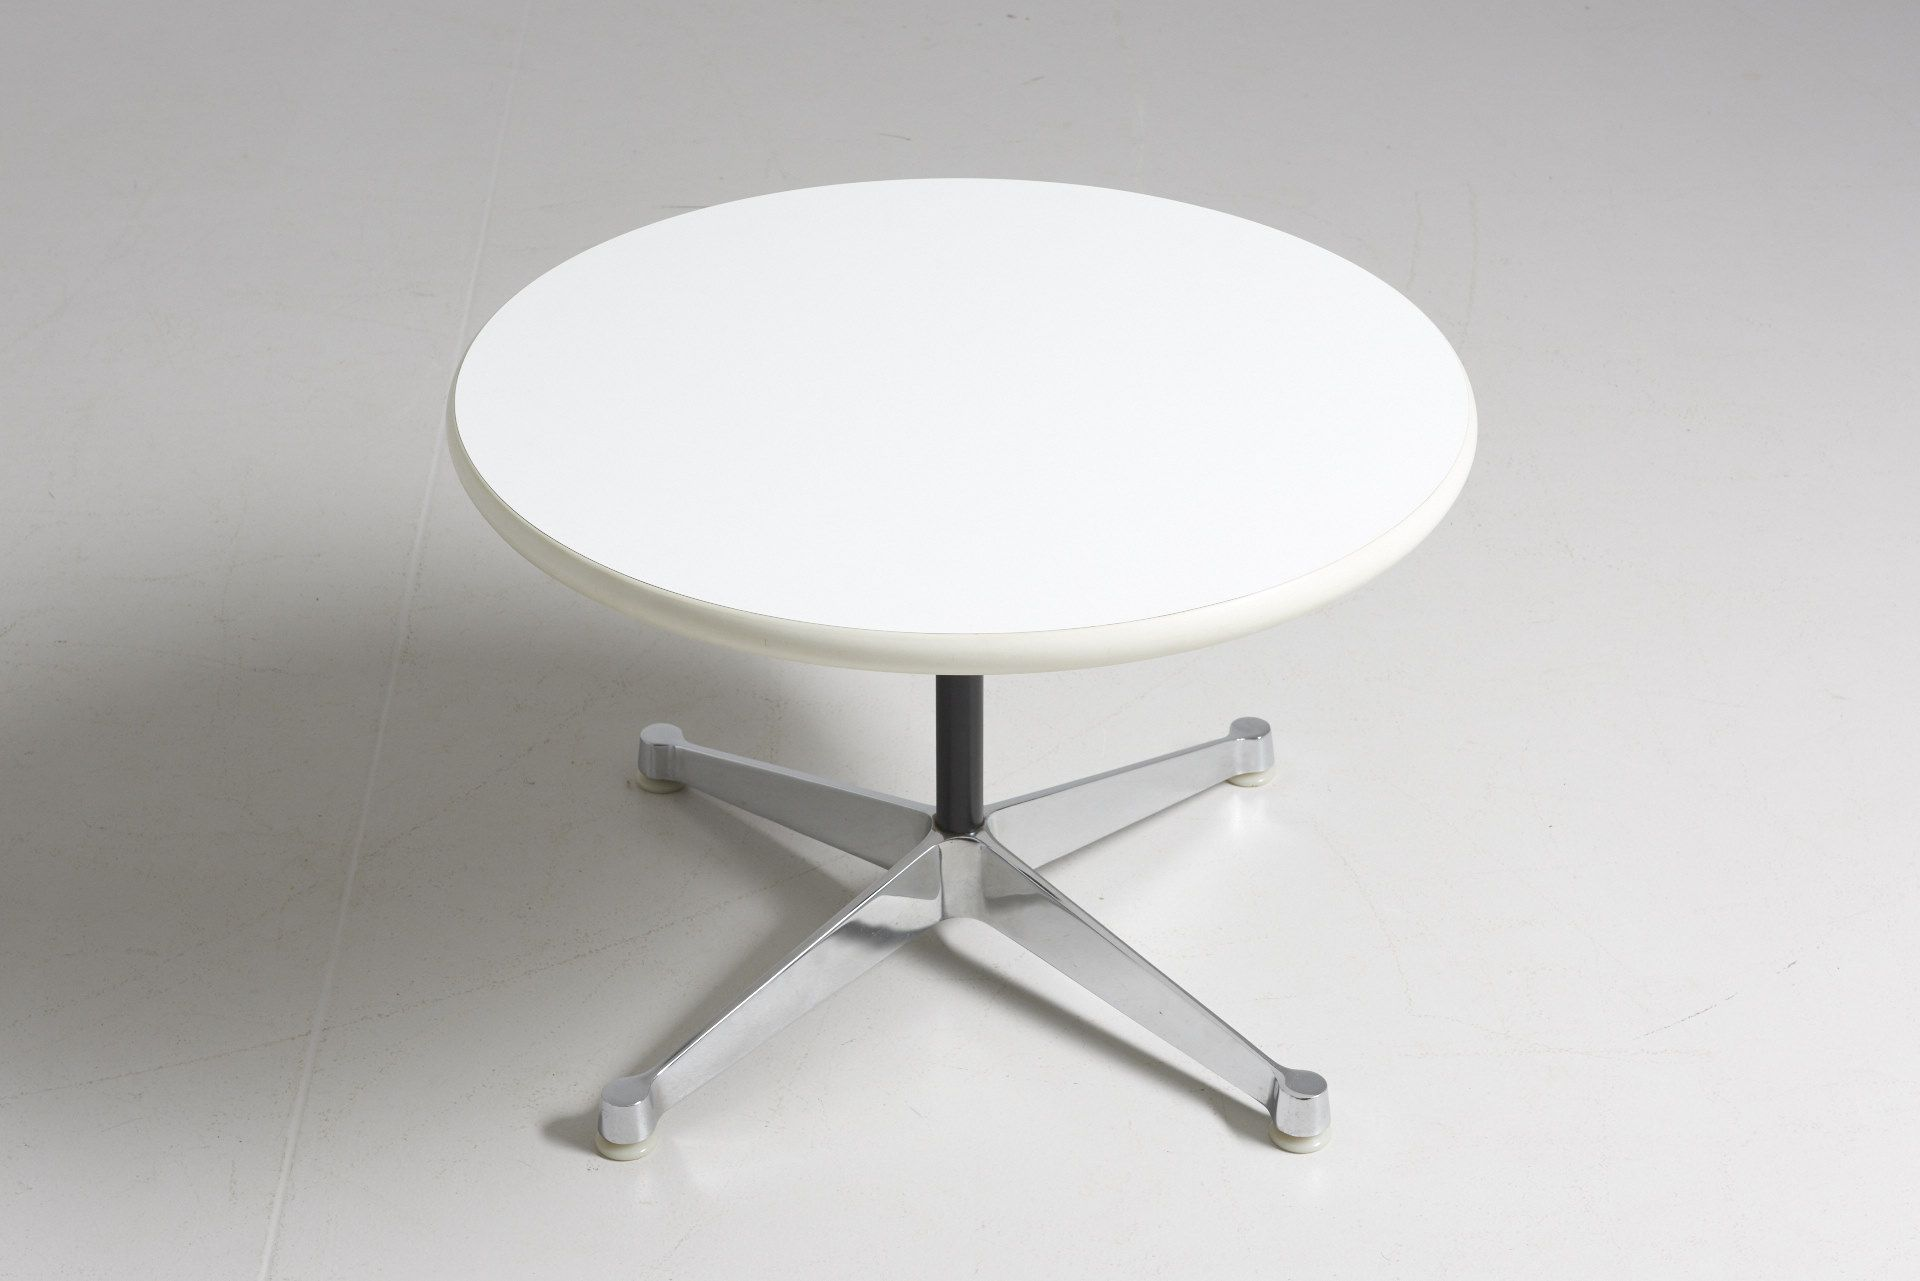 Round Coffee Table By Charles And Ray Eames Typical Cross Foot In Chrome Plated Steel Matching The Foot O Low Tables Selling Furniture Coffee Table Design [ 1281 x 1920 Pixel ]